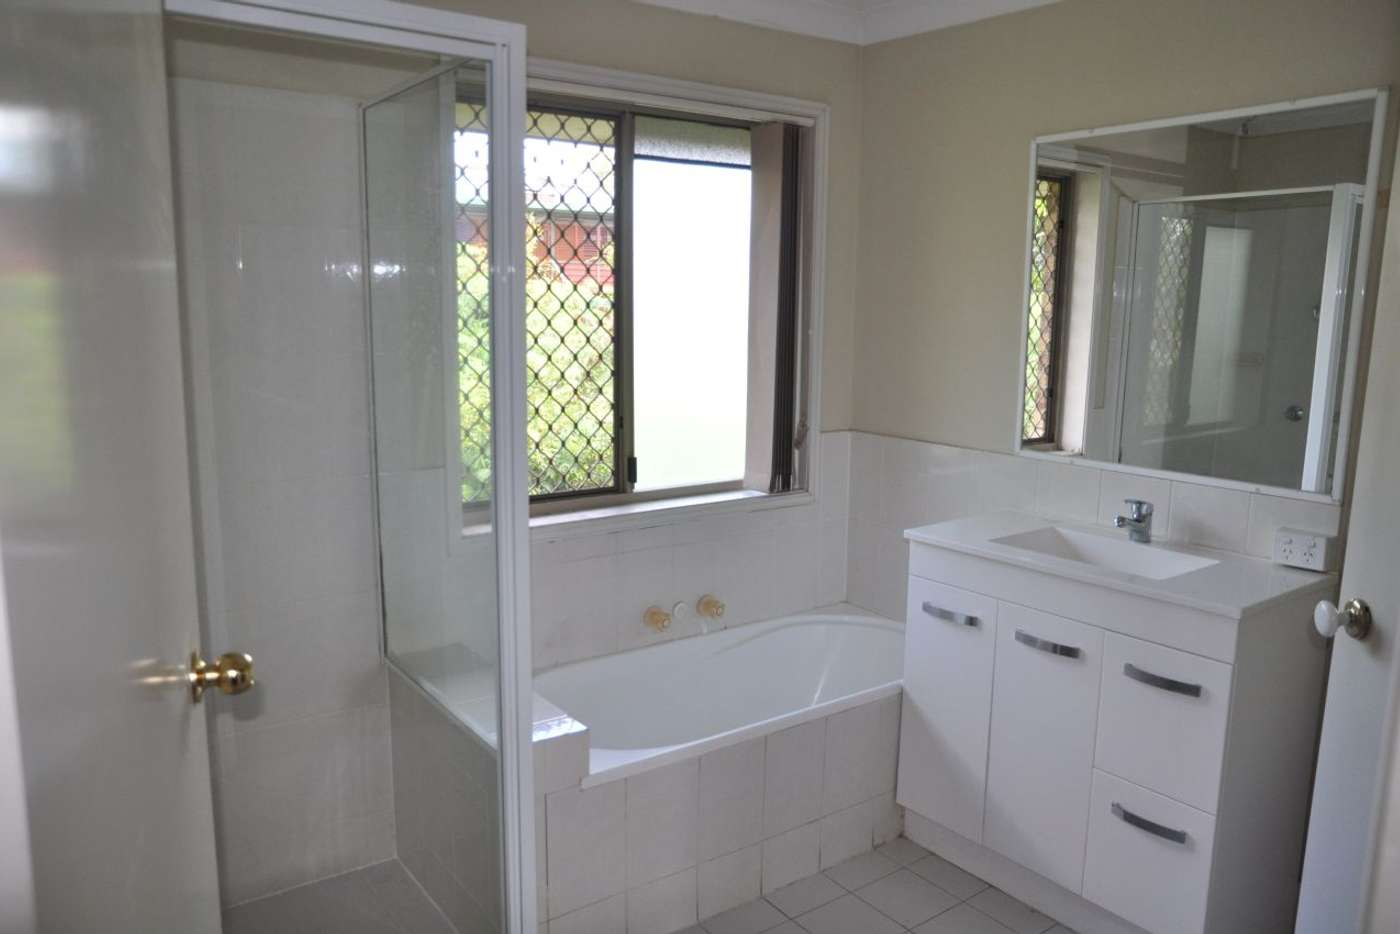 Seventh view of Homely townhouse listing, 153/3 Bass Street, Woodridge QLD 4114